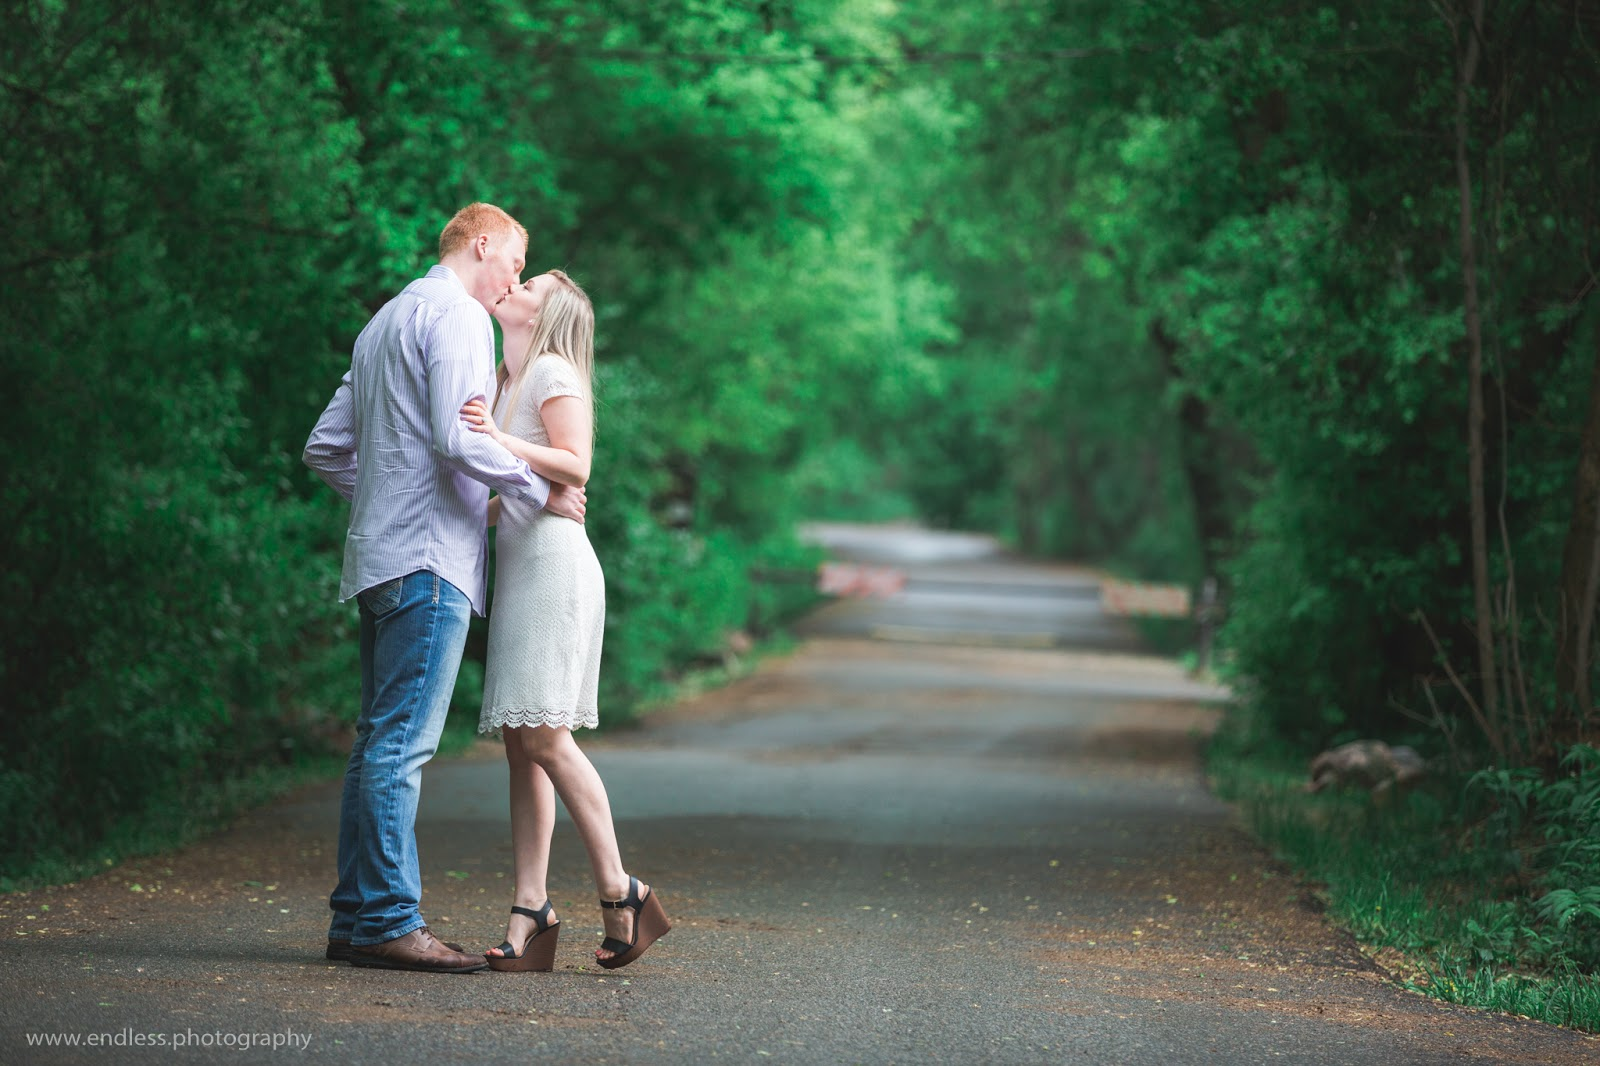 Logan Utah Wedding Photographer, Logan Canyon Engagements, Photography, Photographer, Wedding, Couple, Spring, Engagements